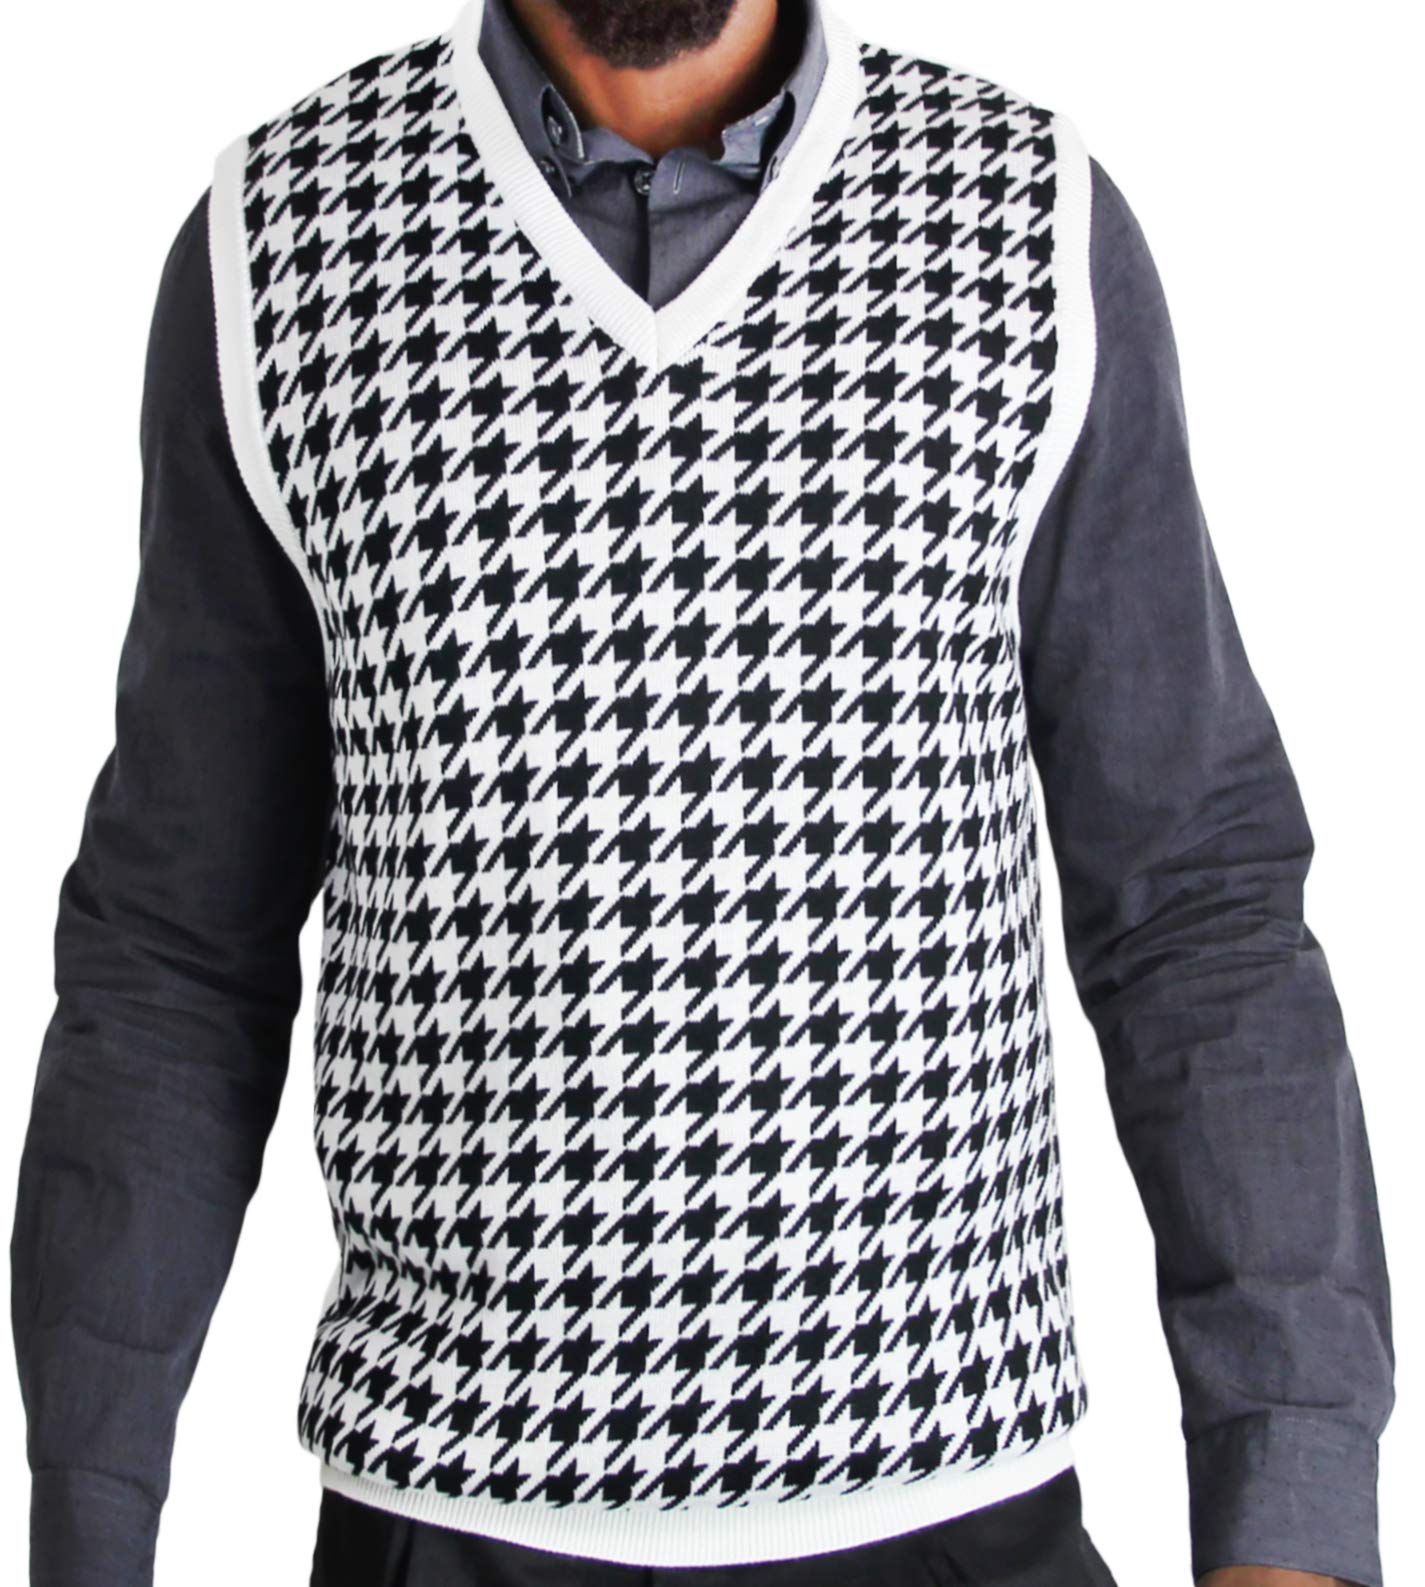 Blue Ocean Jacquard Houndstooth Sweater Vest-2X-Large by Blue Ocean